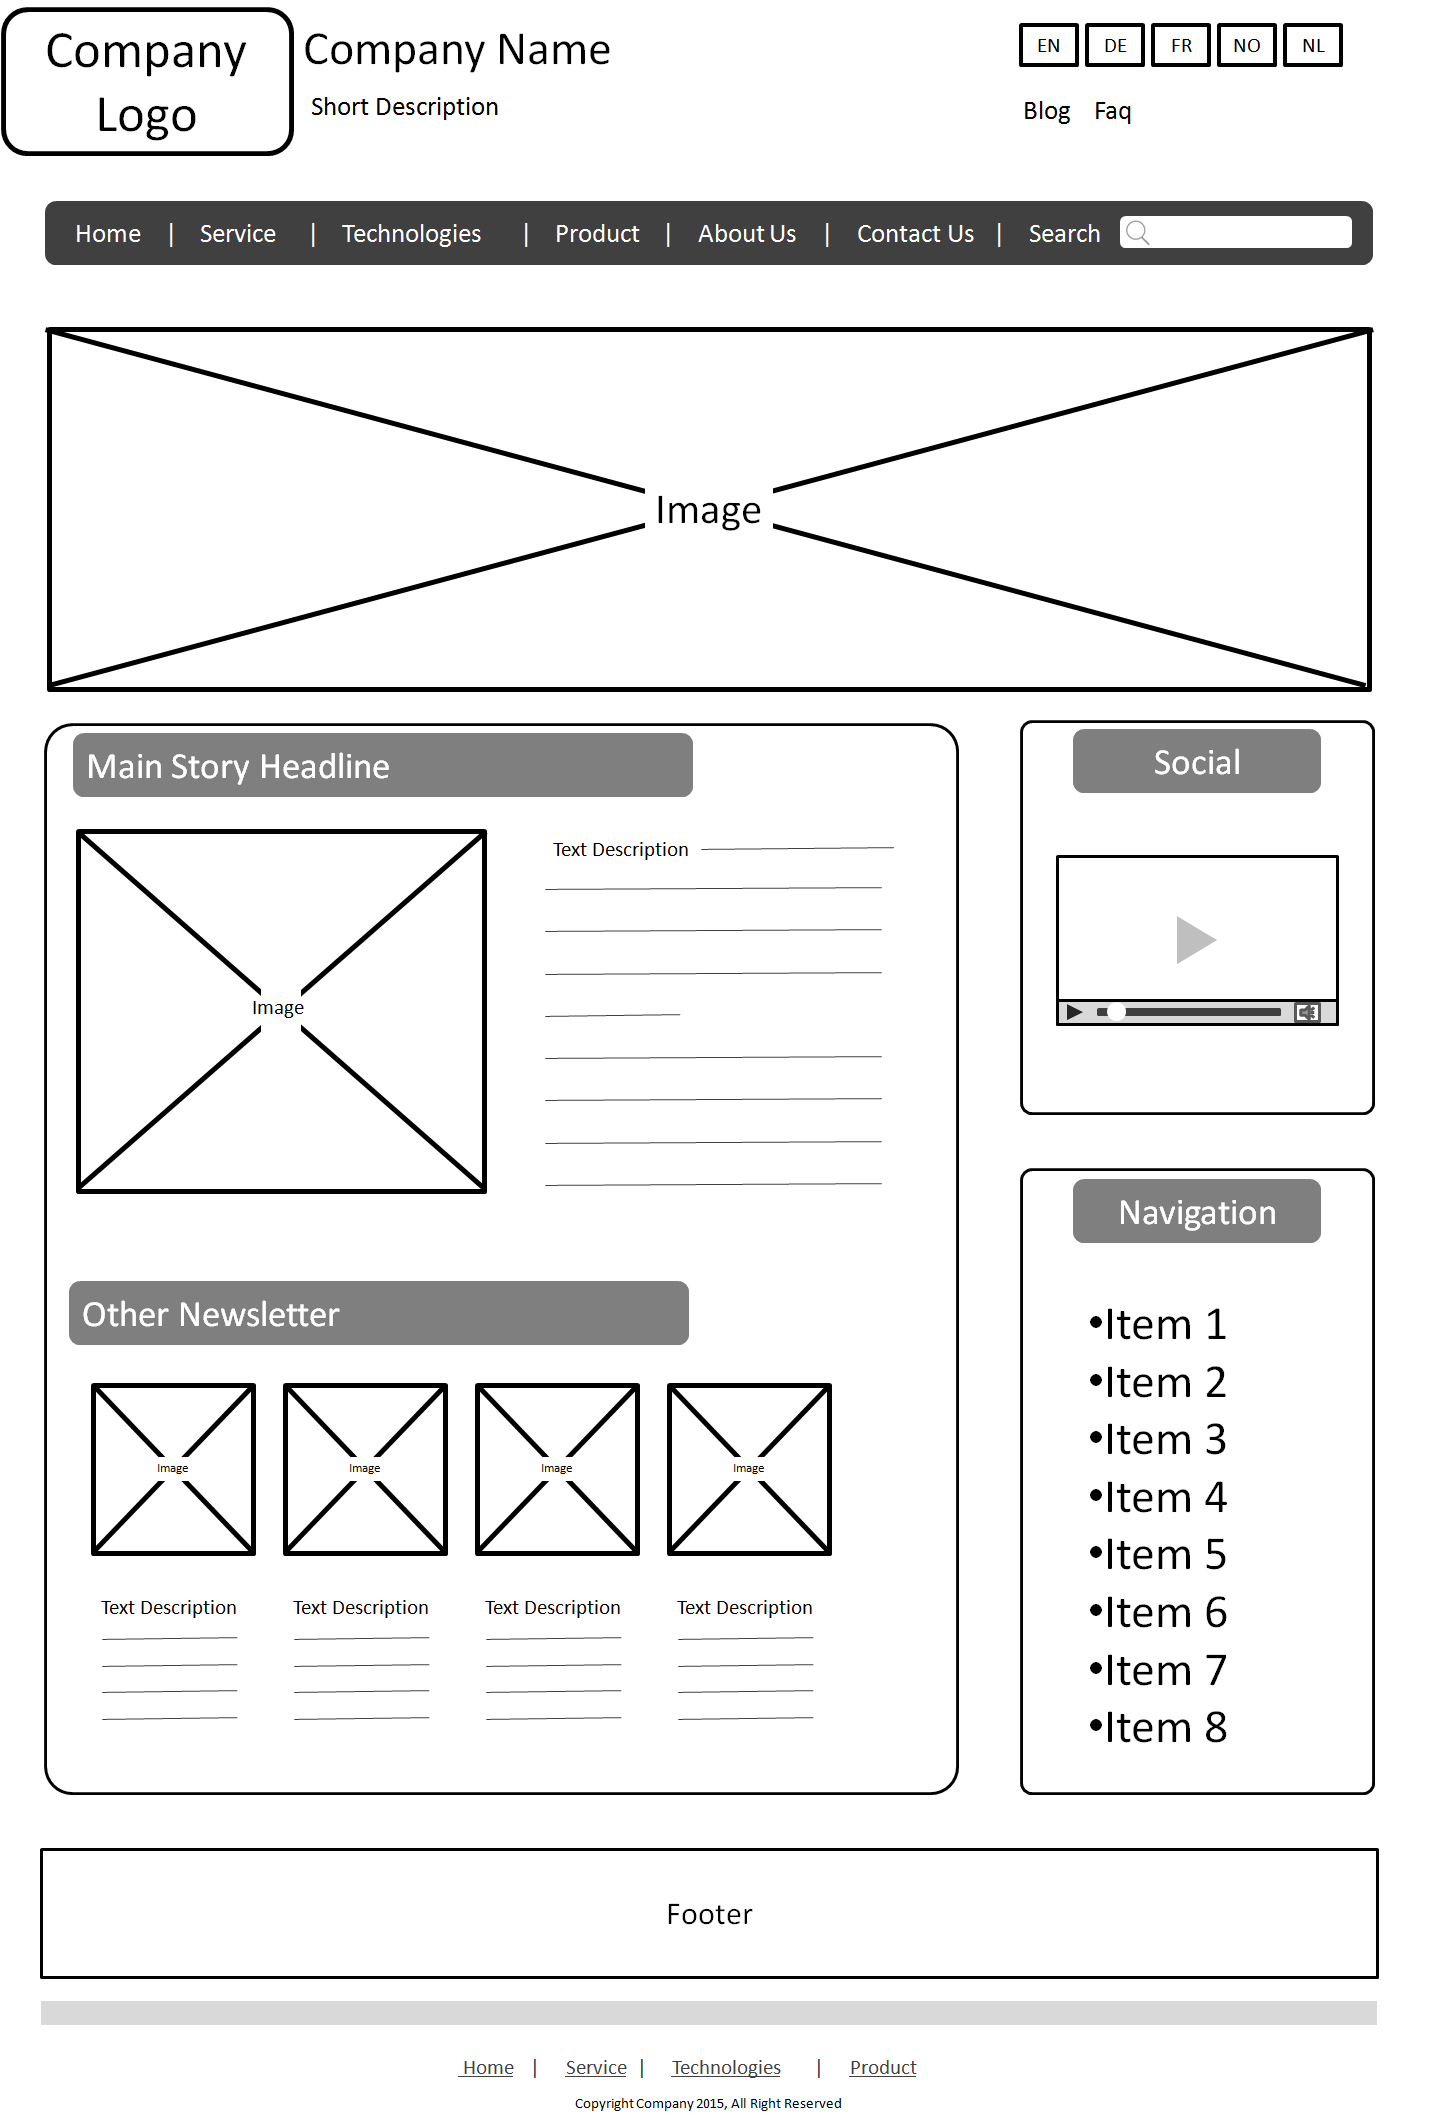 Wireframes Help To Produce Effective Designs - Image 1